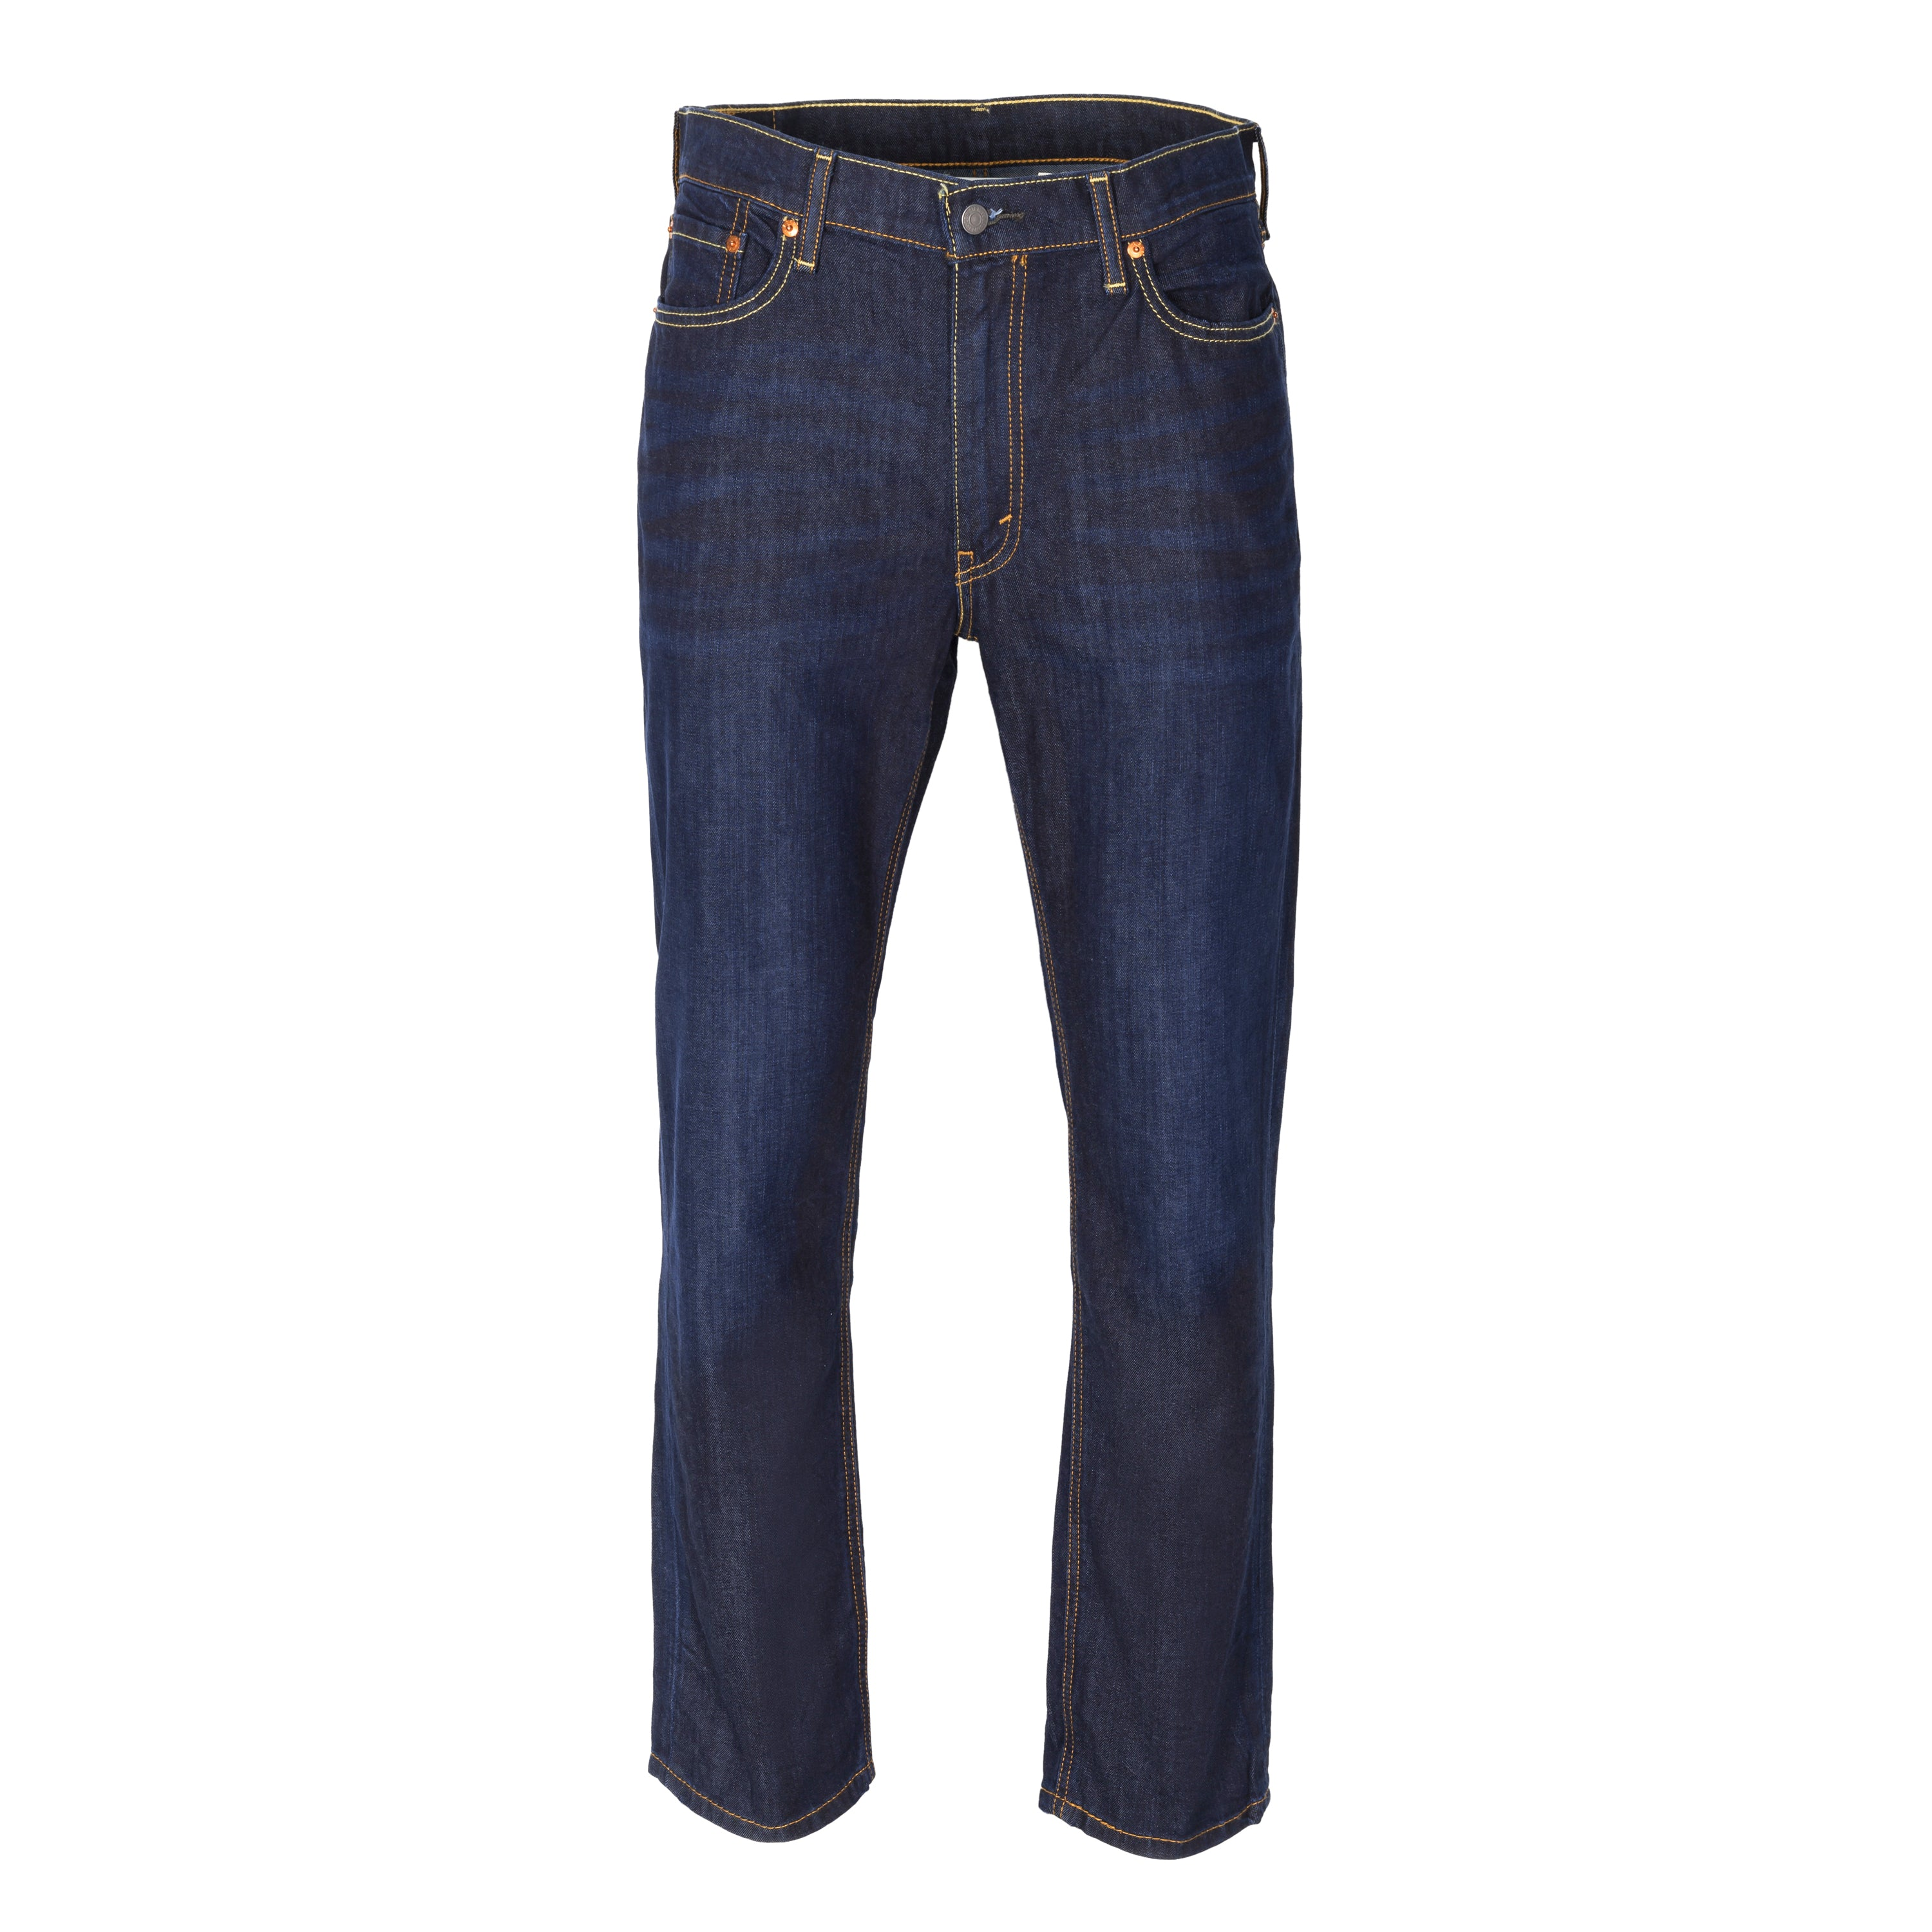 f8281e7d LEVI'S 541 ATHLETIC FIT STRETCH JEAN – Miltons - The Store for Men